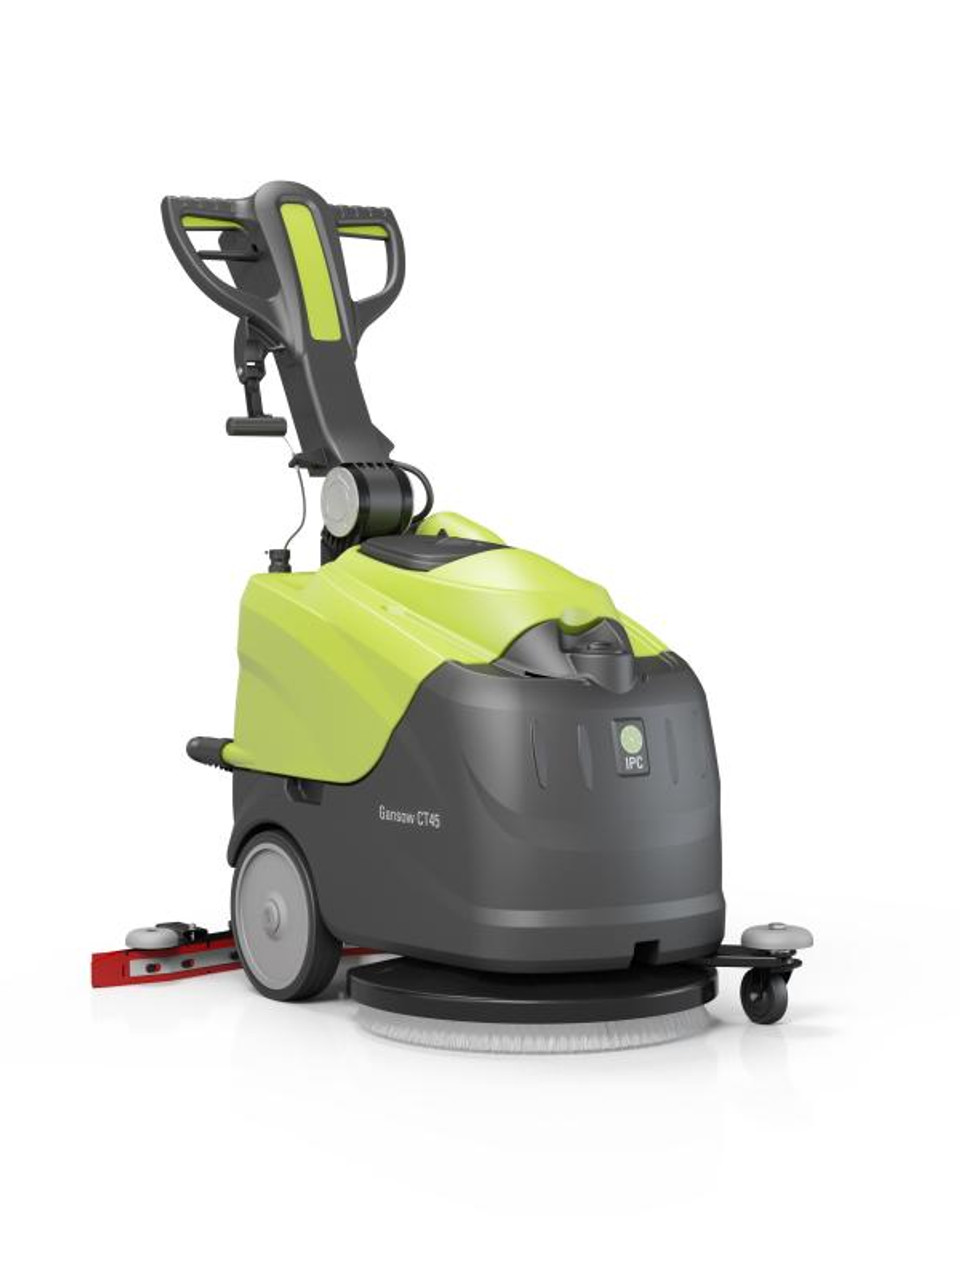 The Cleantime CT45 is compact in size for easy maneuverability